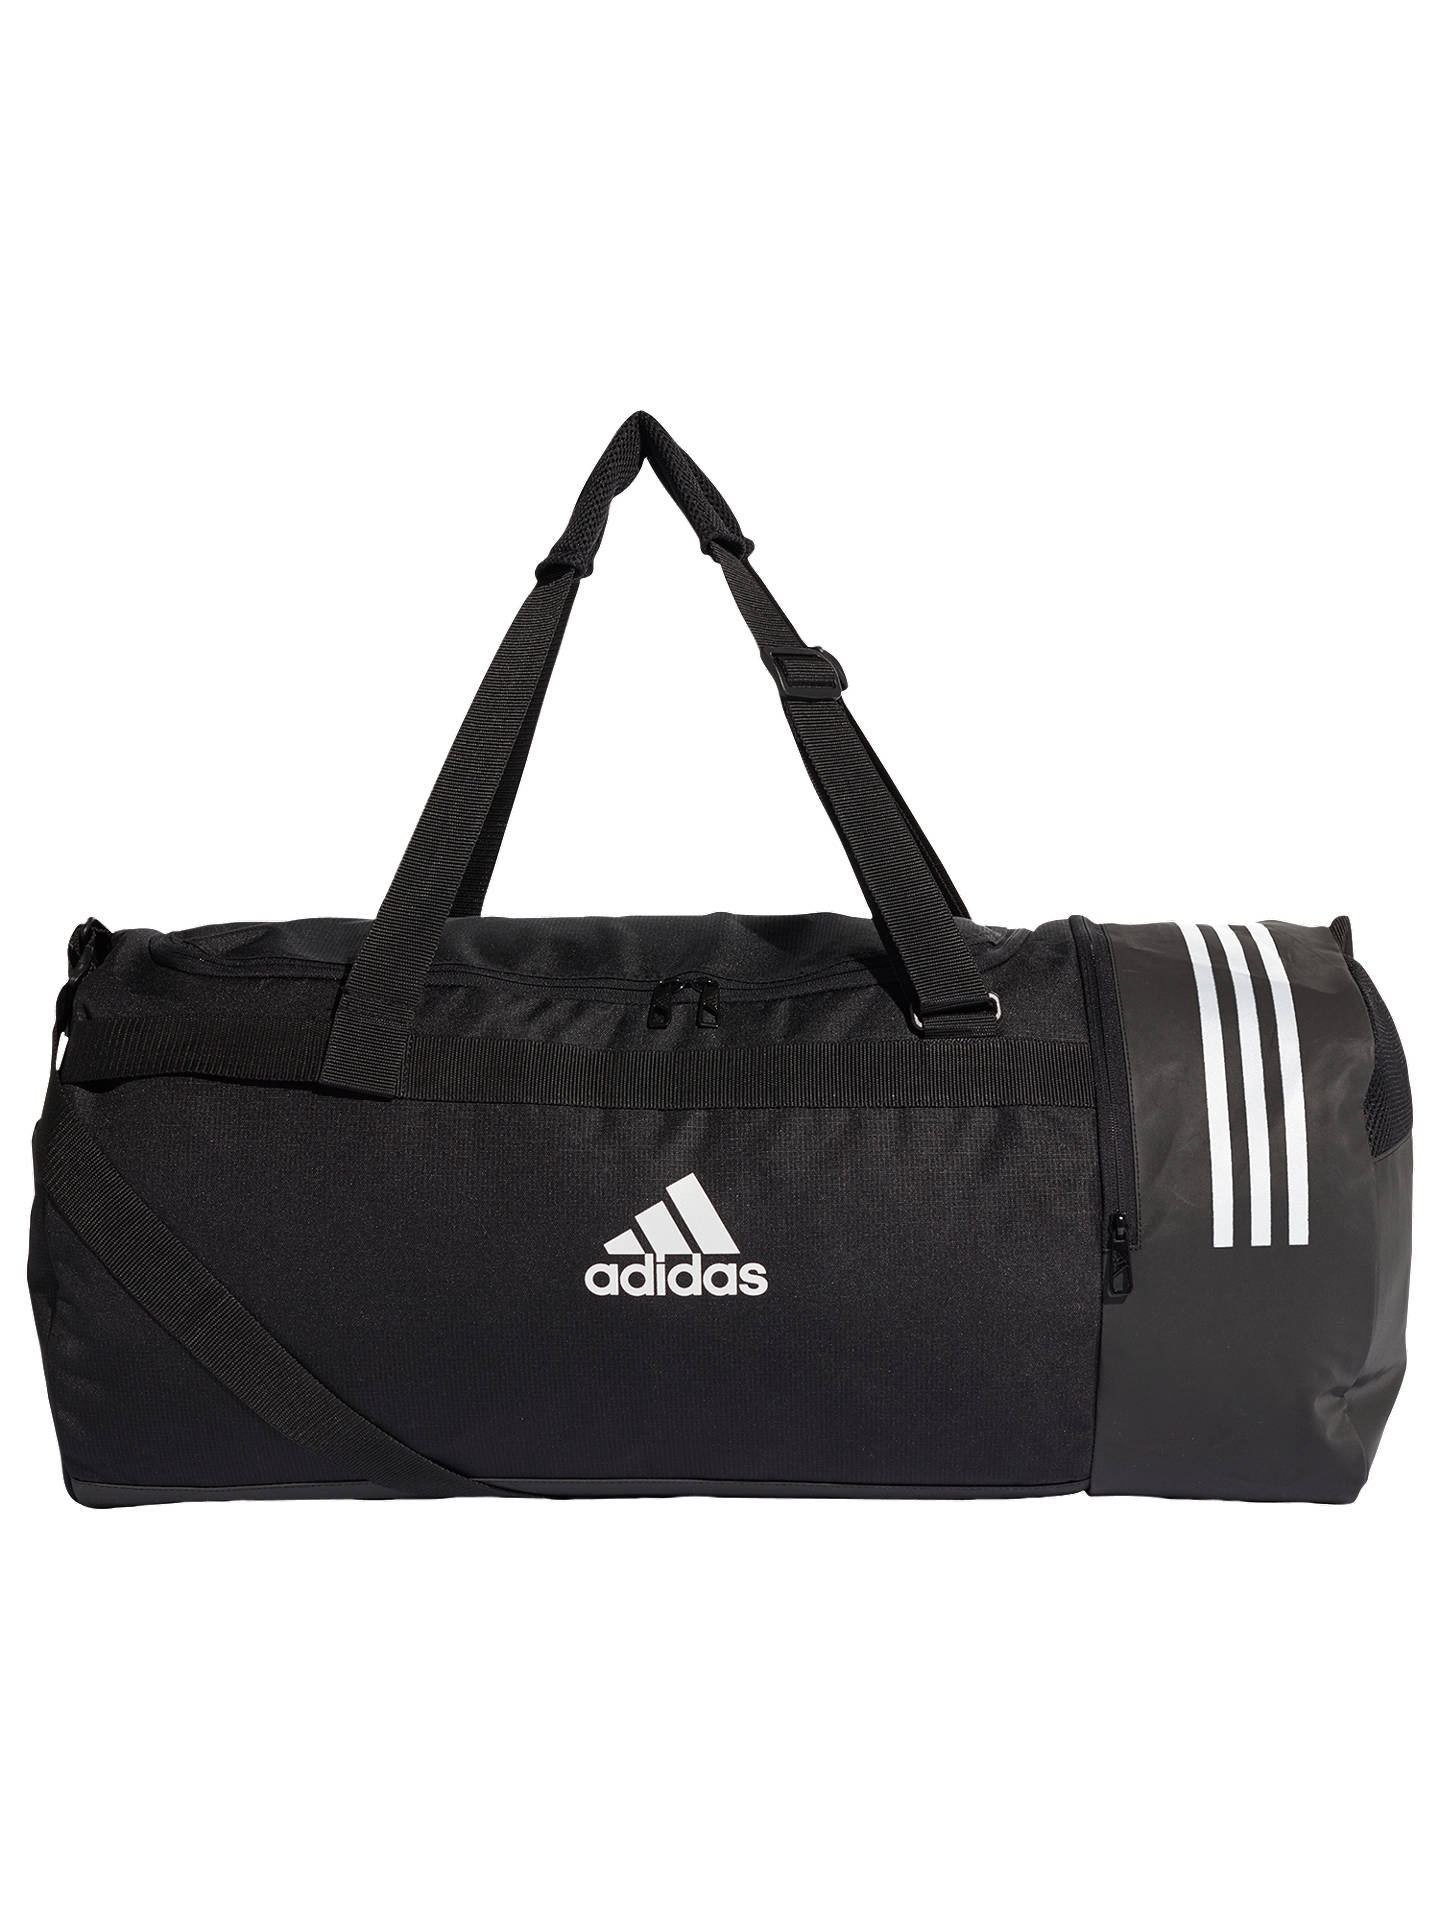 Buyadidas Convertible 3-Stripes Duffle Bag, Large, Black Online at  johnlewis.com ... c6022ee12d